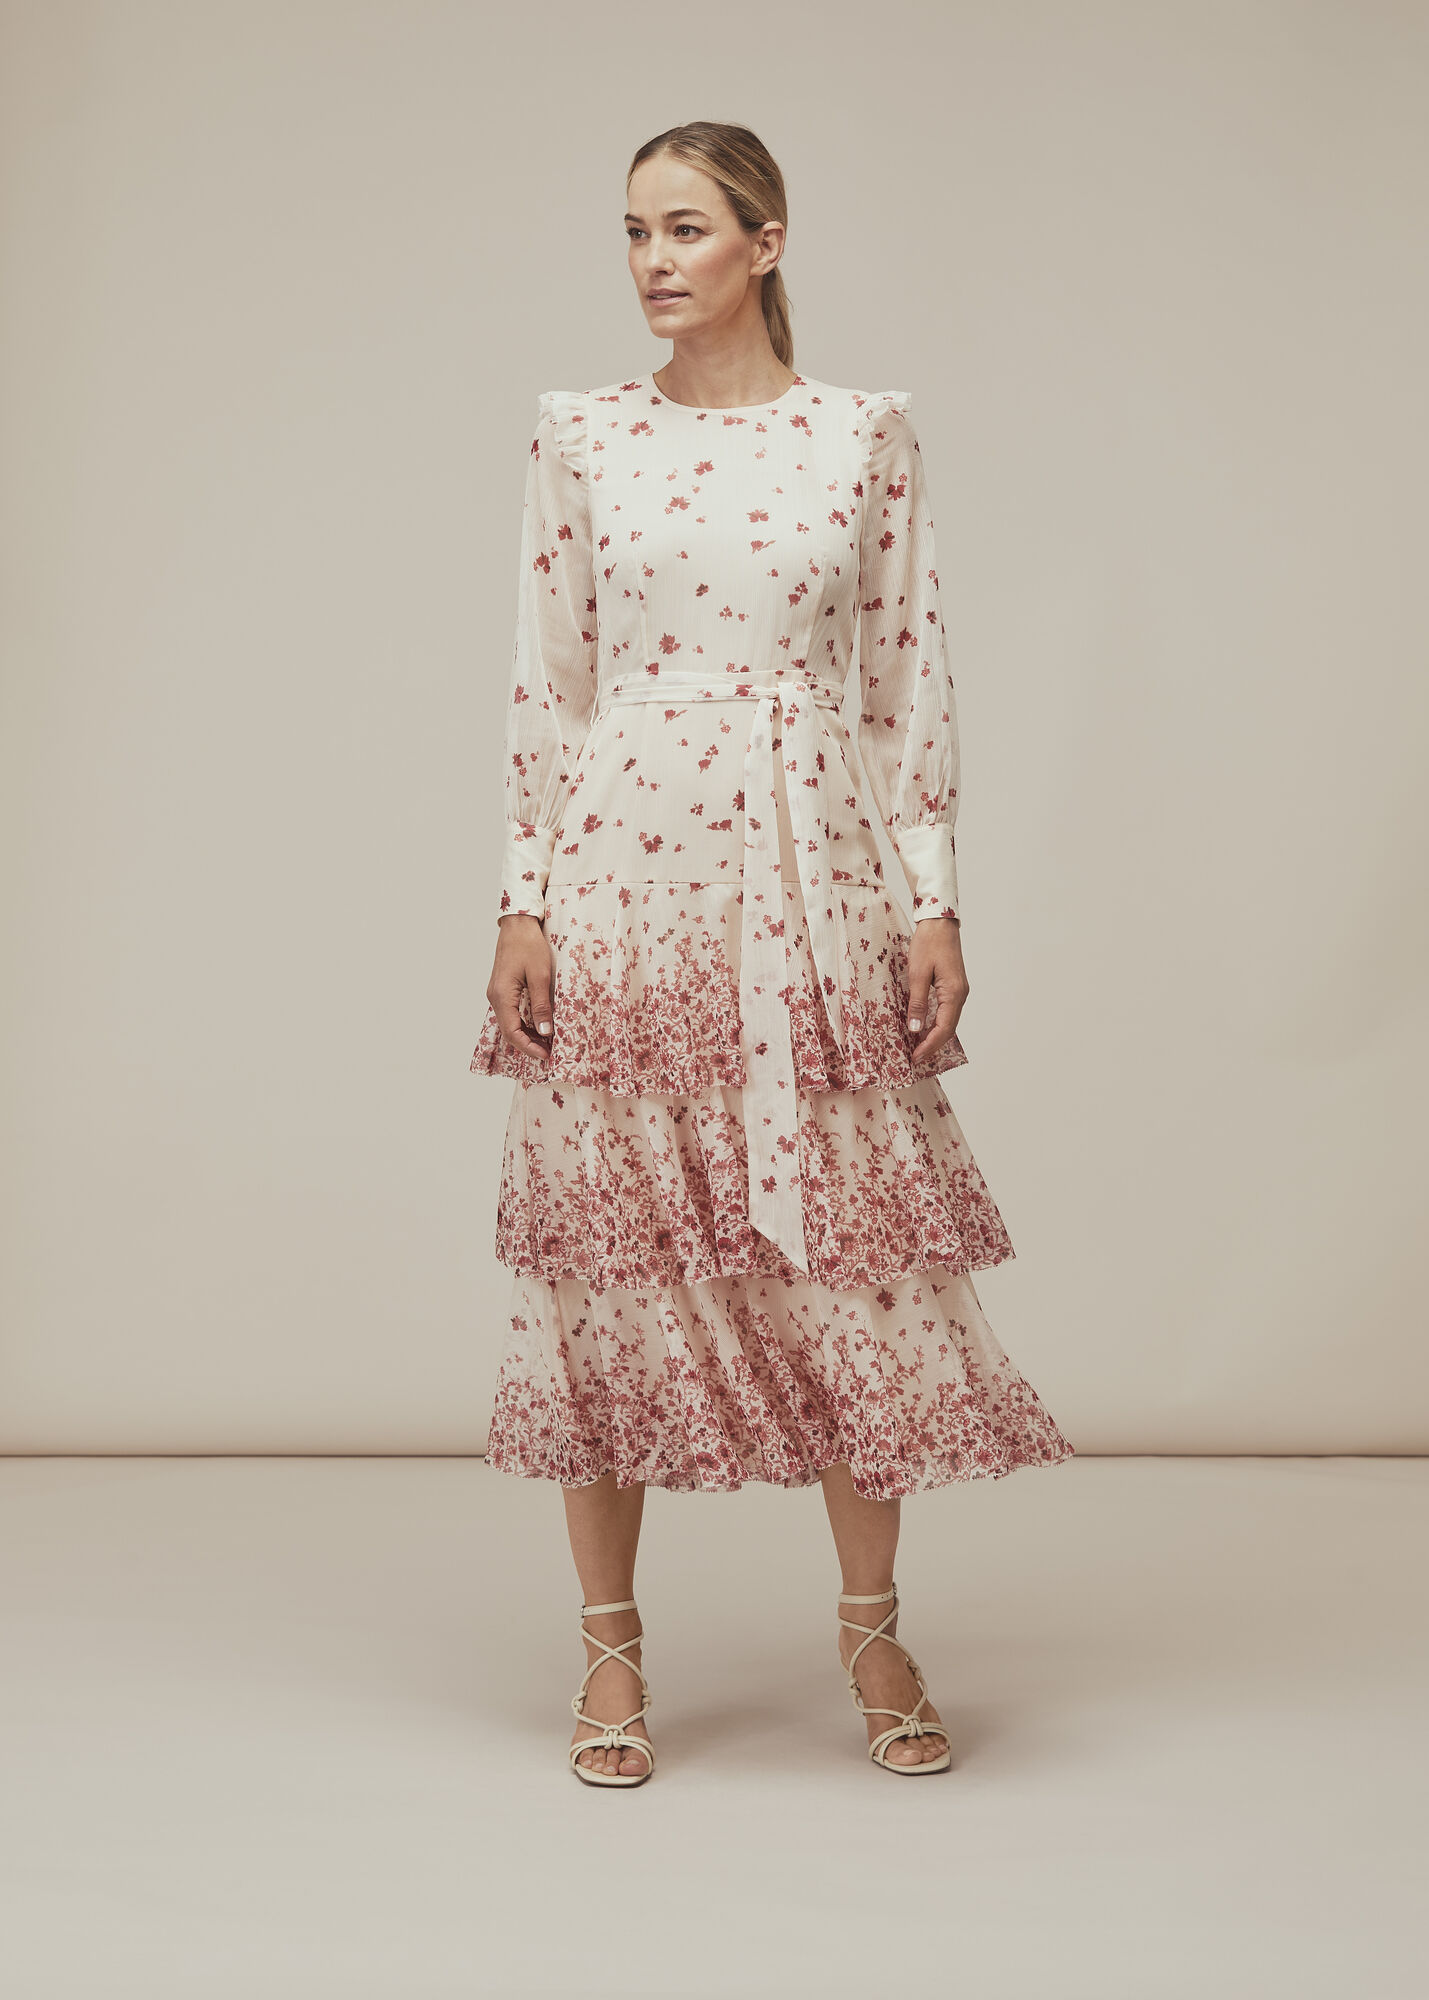 Eastern Blossom Dress